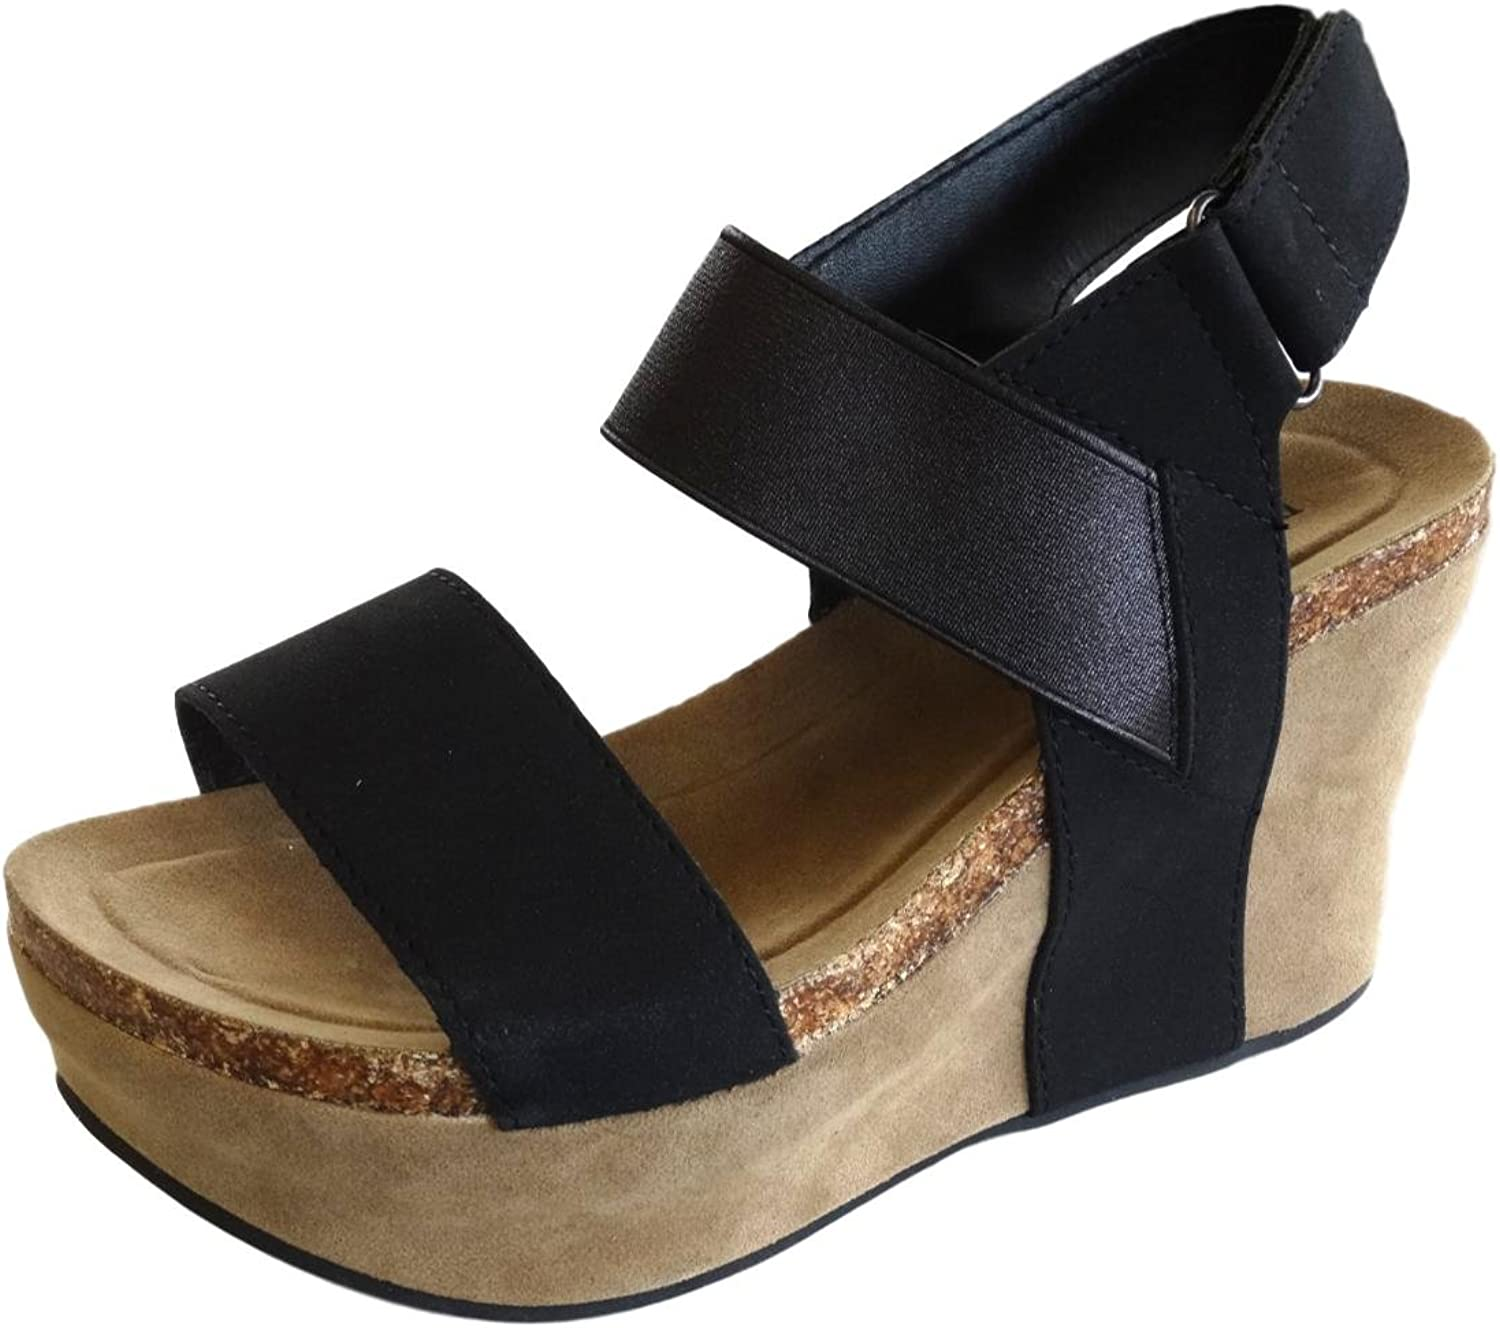 Pierre Dumas Hester-13 Women's Strappy Rounded-Toe Wedge Sandals